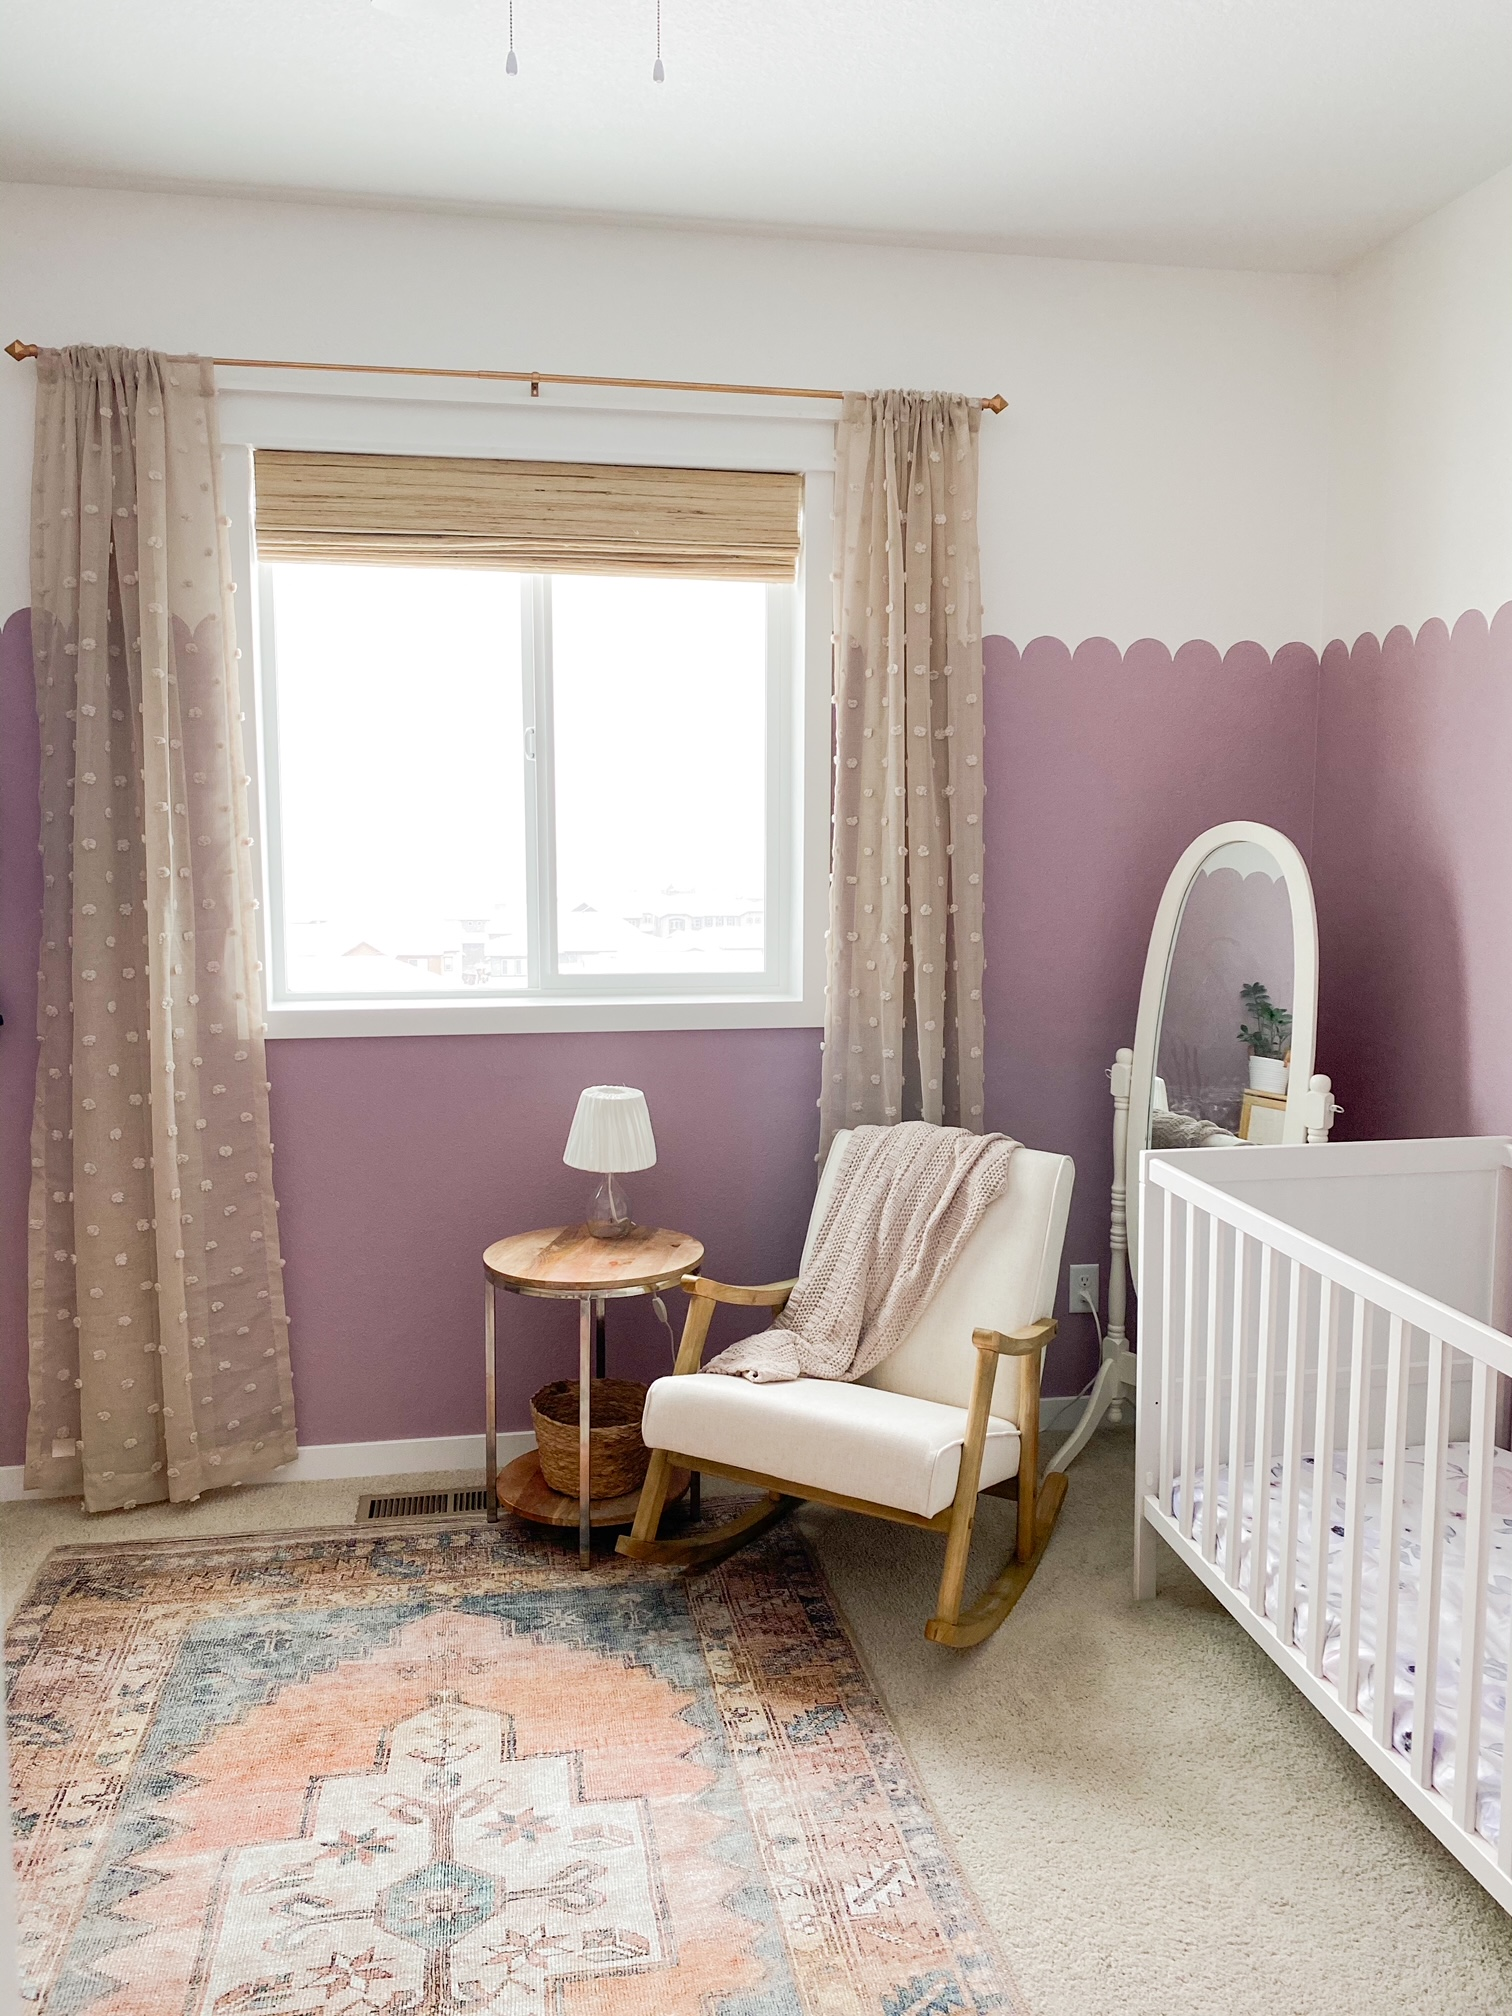 Curtains from Amazon that are perfect for a nursery!